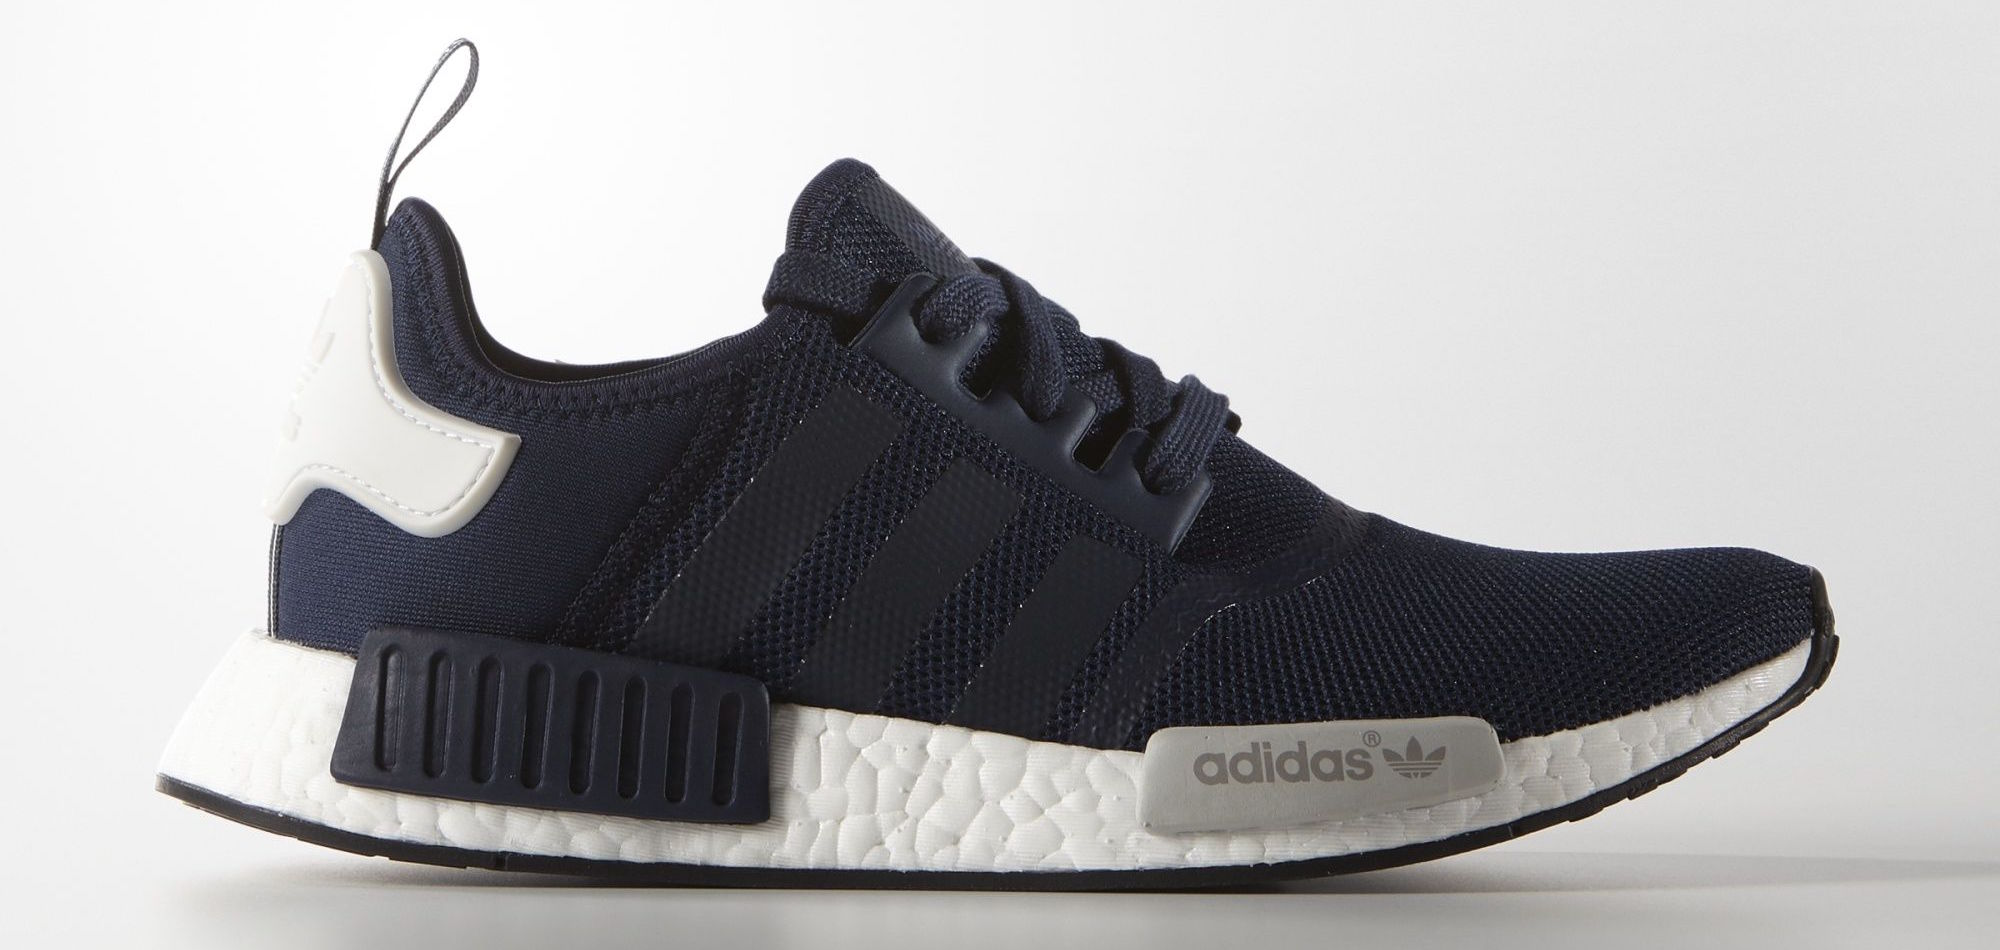 ... adidas NMD R1 Runner image (starting around 10 am EST on March 17